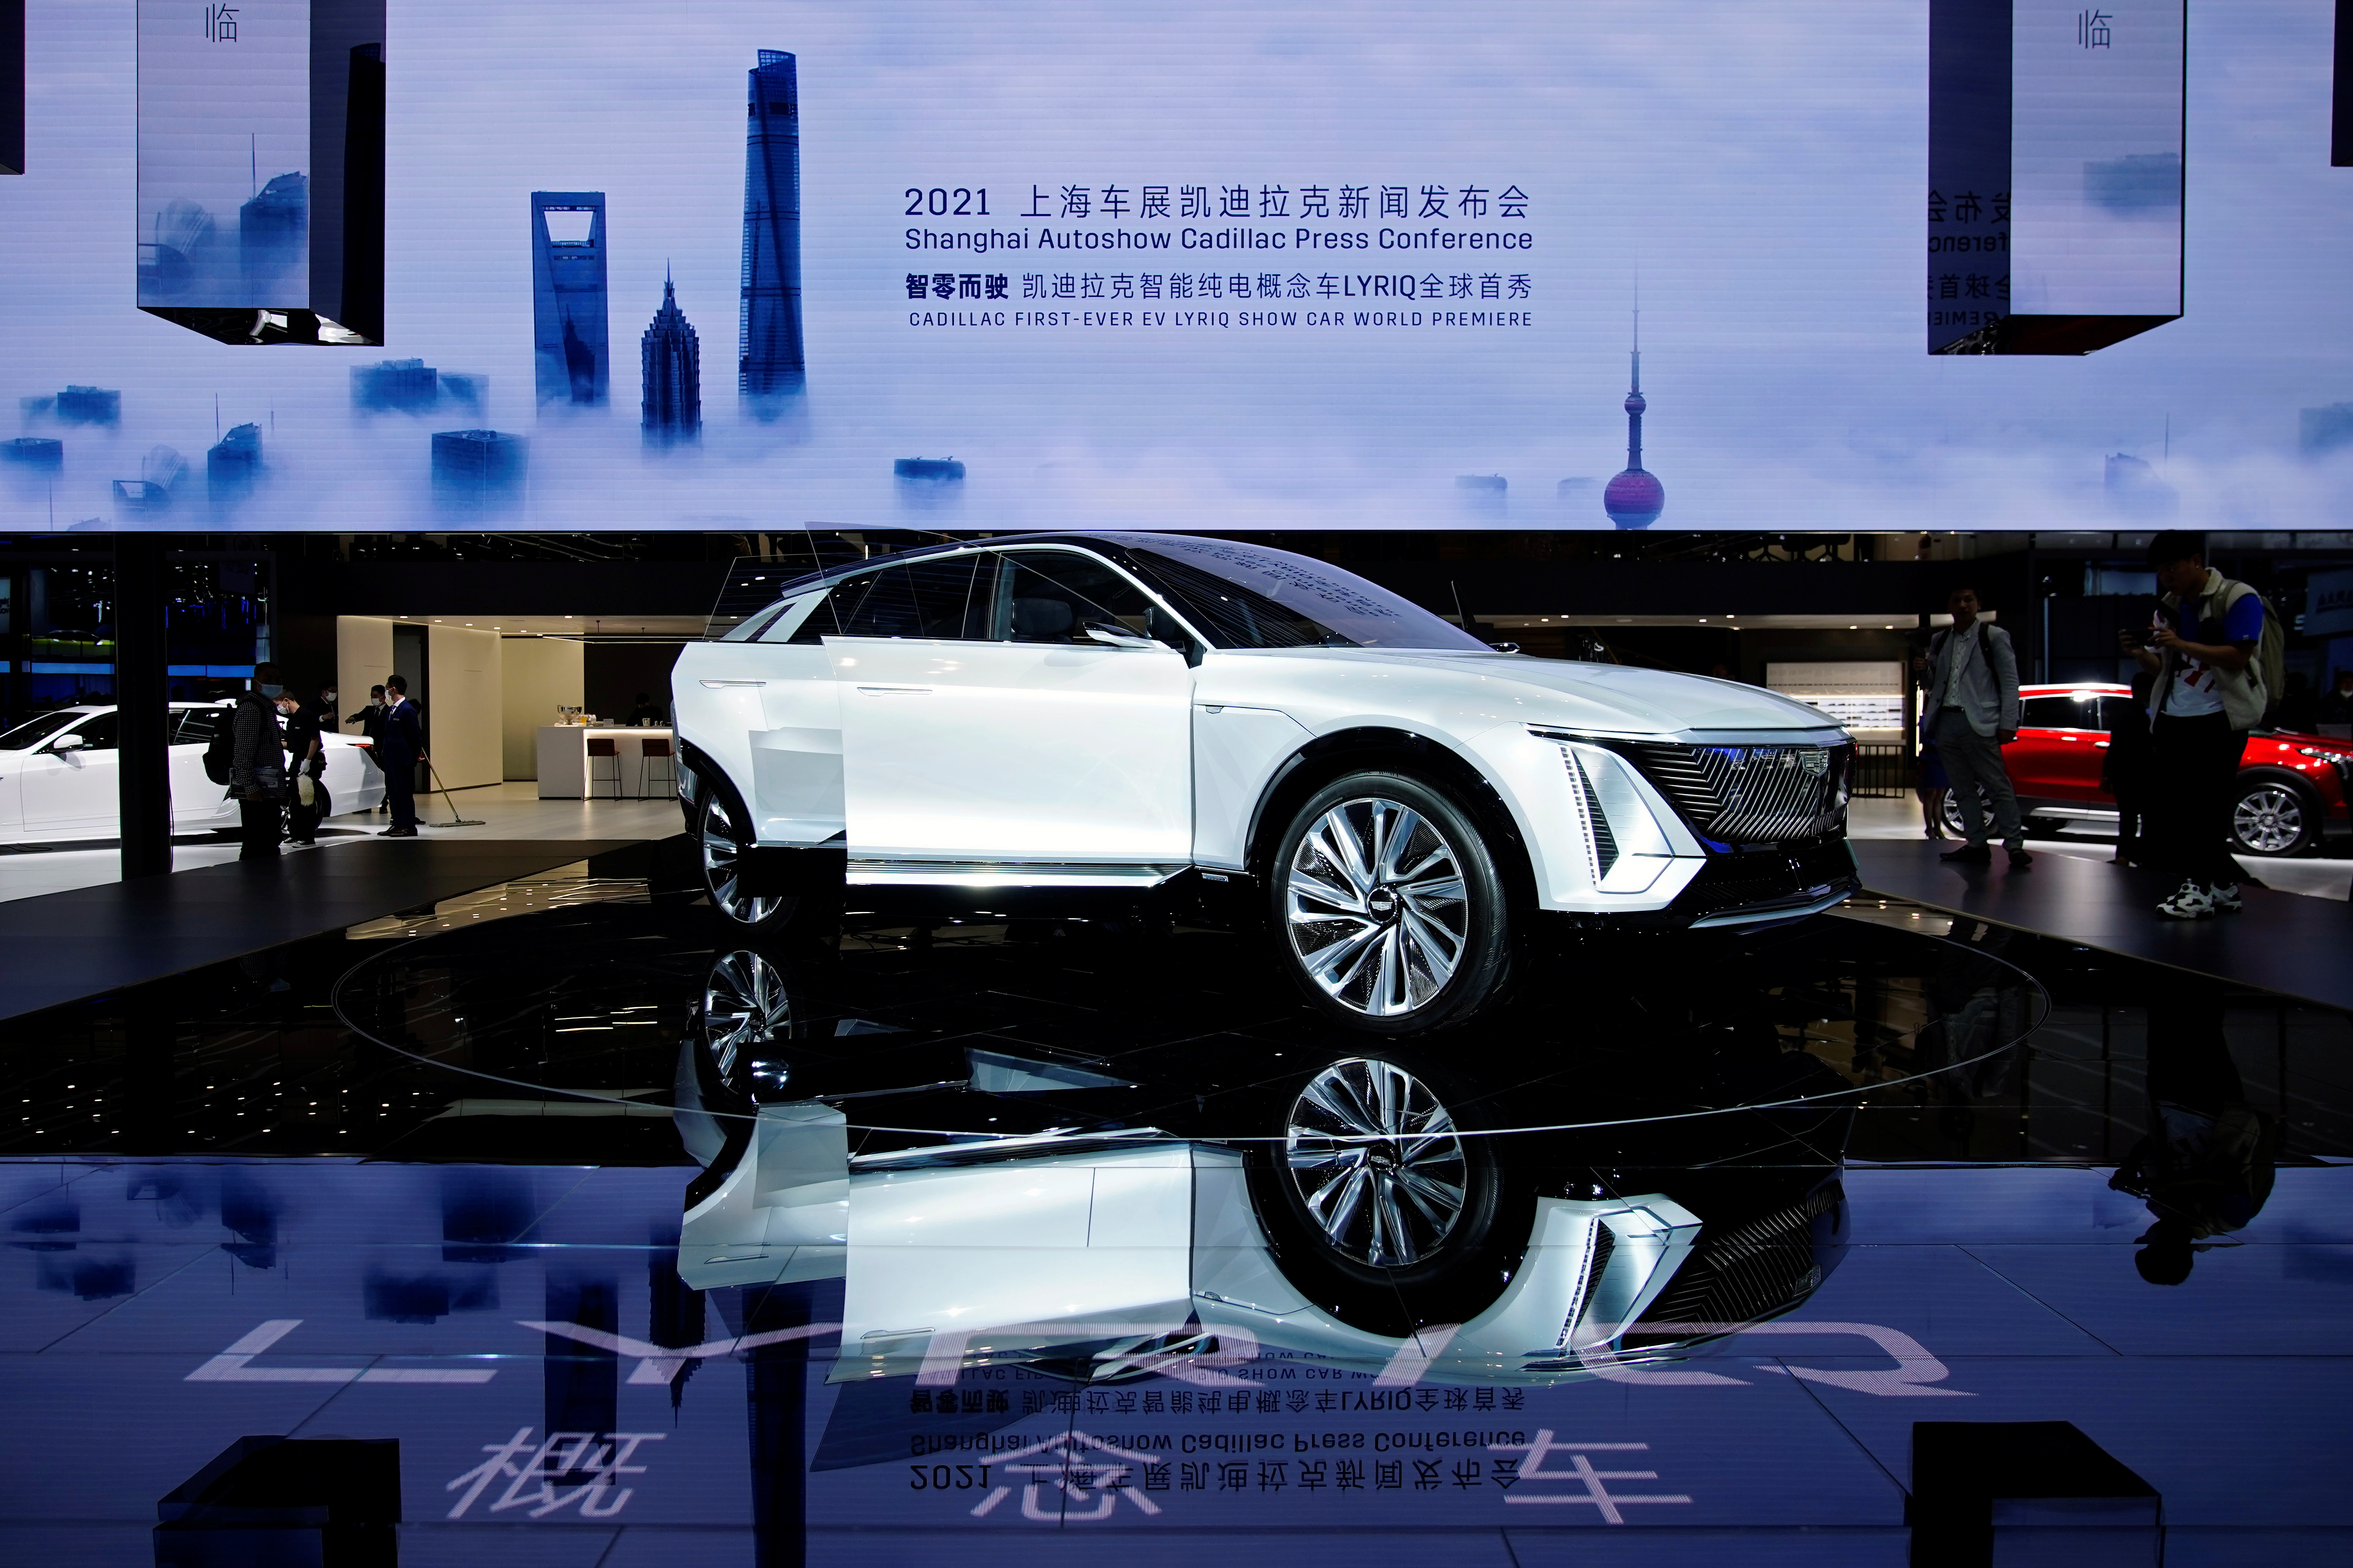 A Cadillac Lyriq electric vehicle under General Motors is seen during its world premiere on a media day for the Auto Shanghai show in Shanghai, April 19, 2021. REUTERS/Aly Song